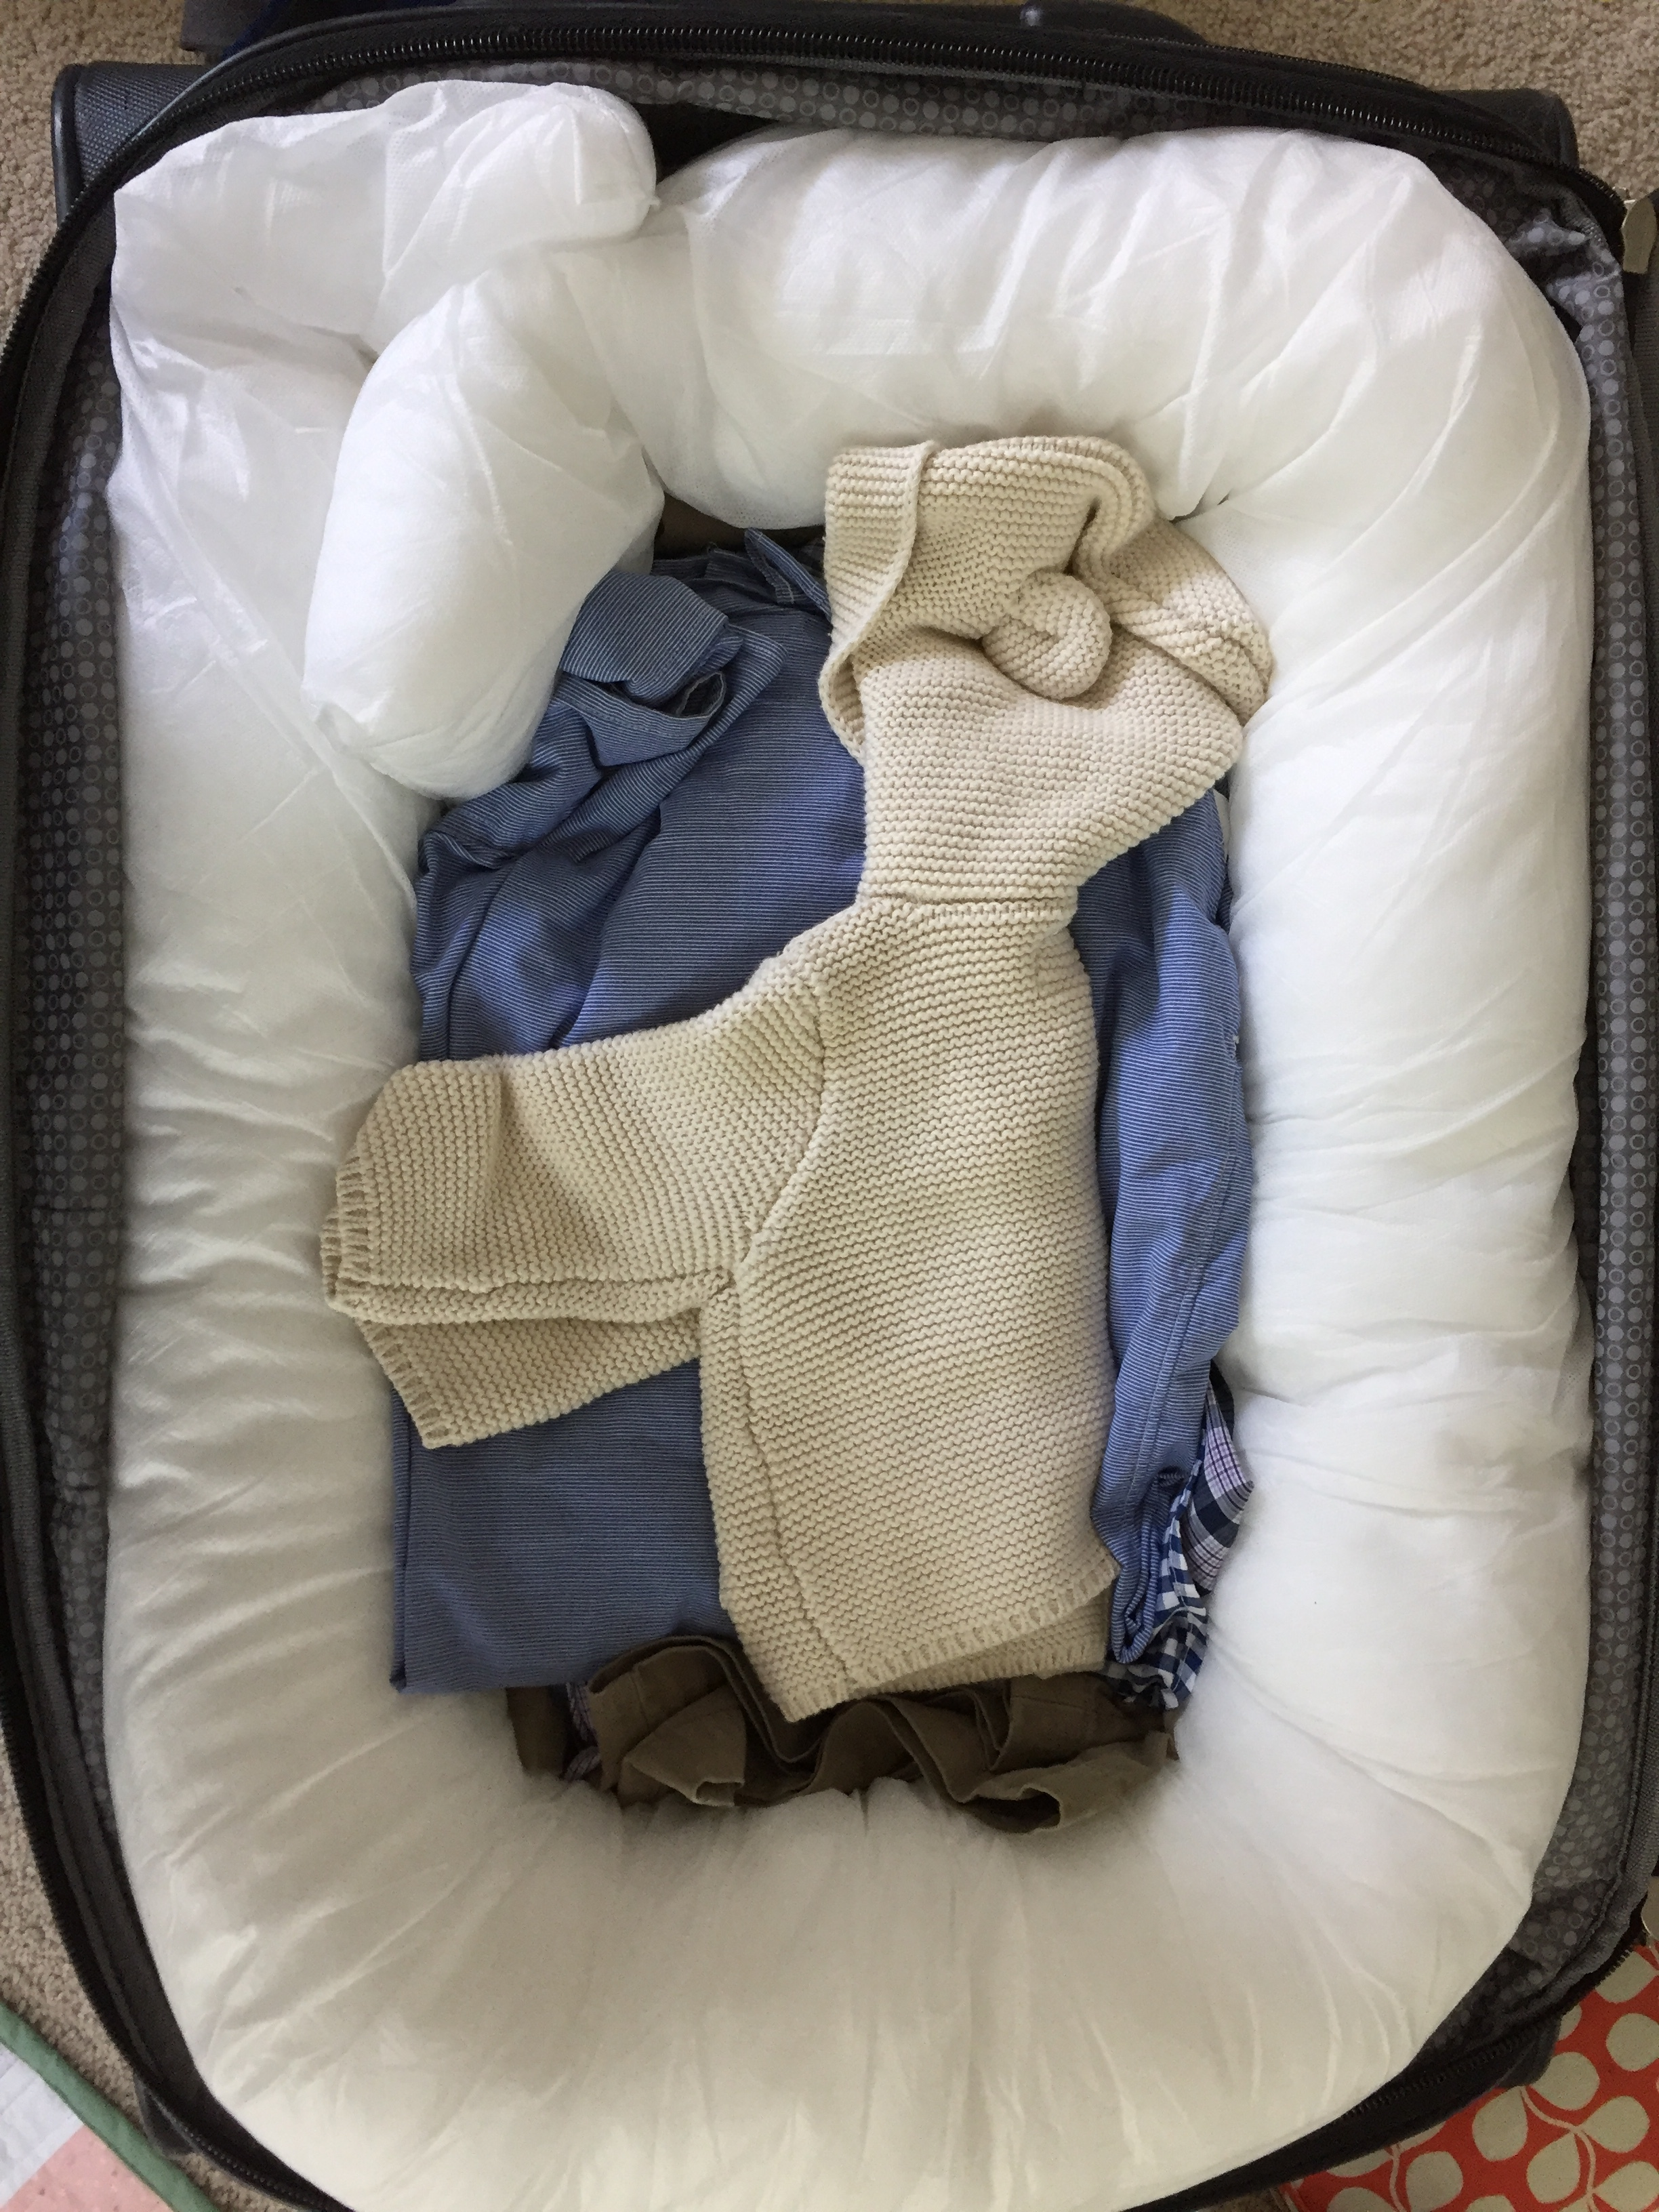 Suitcase Layer 2